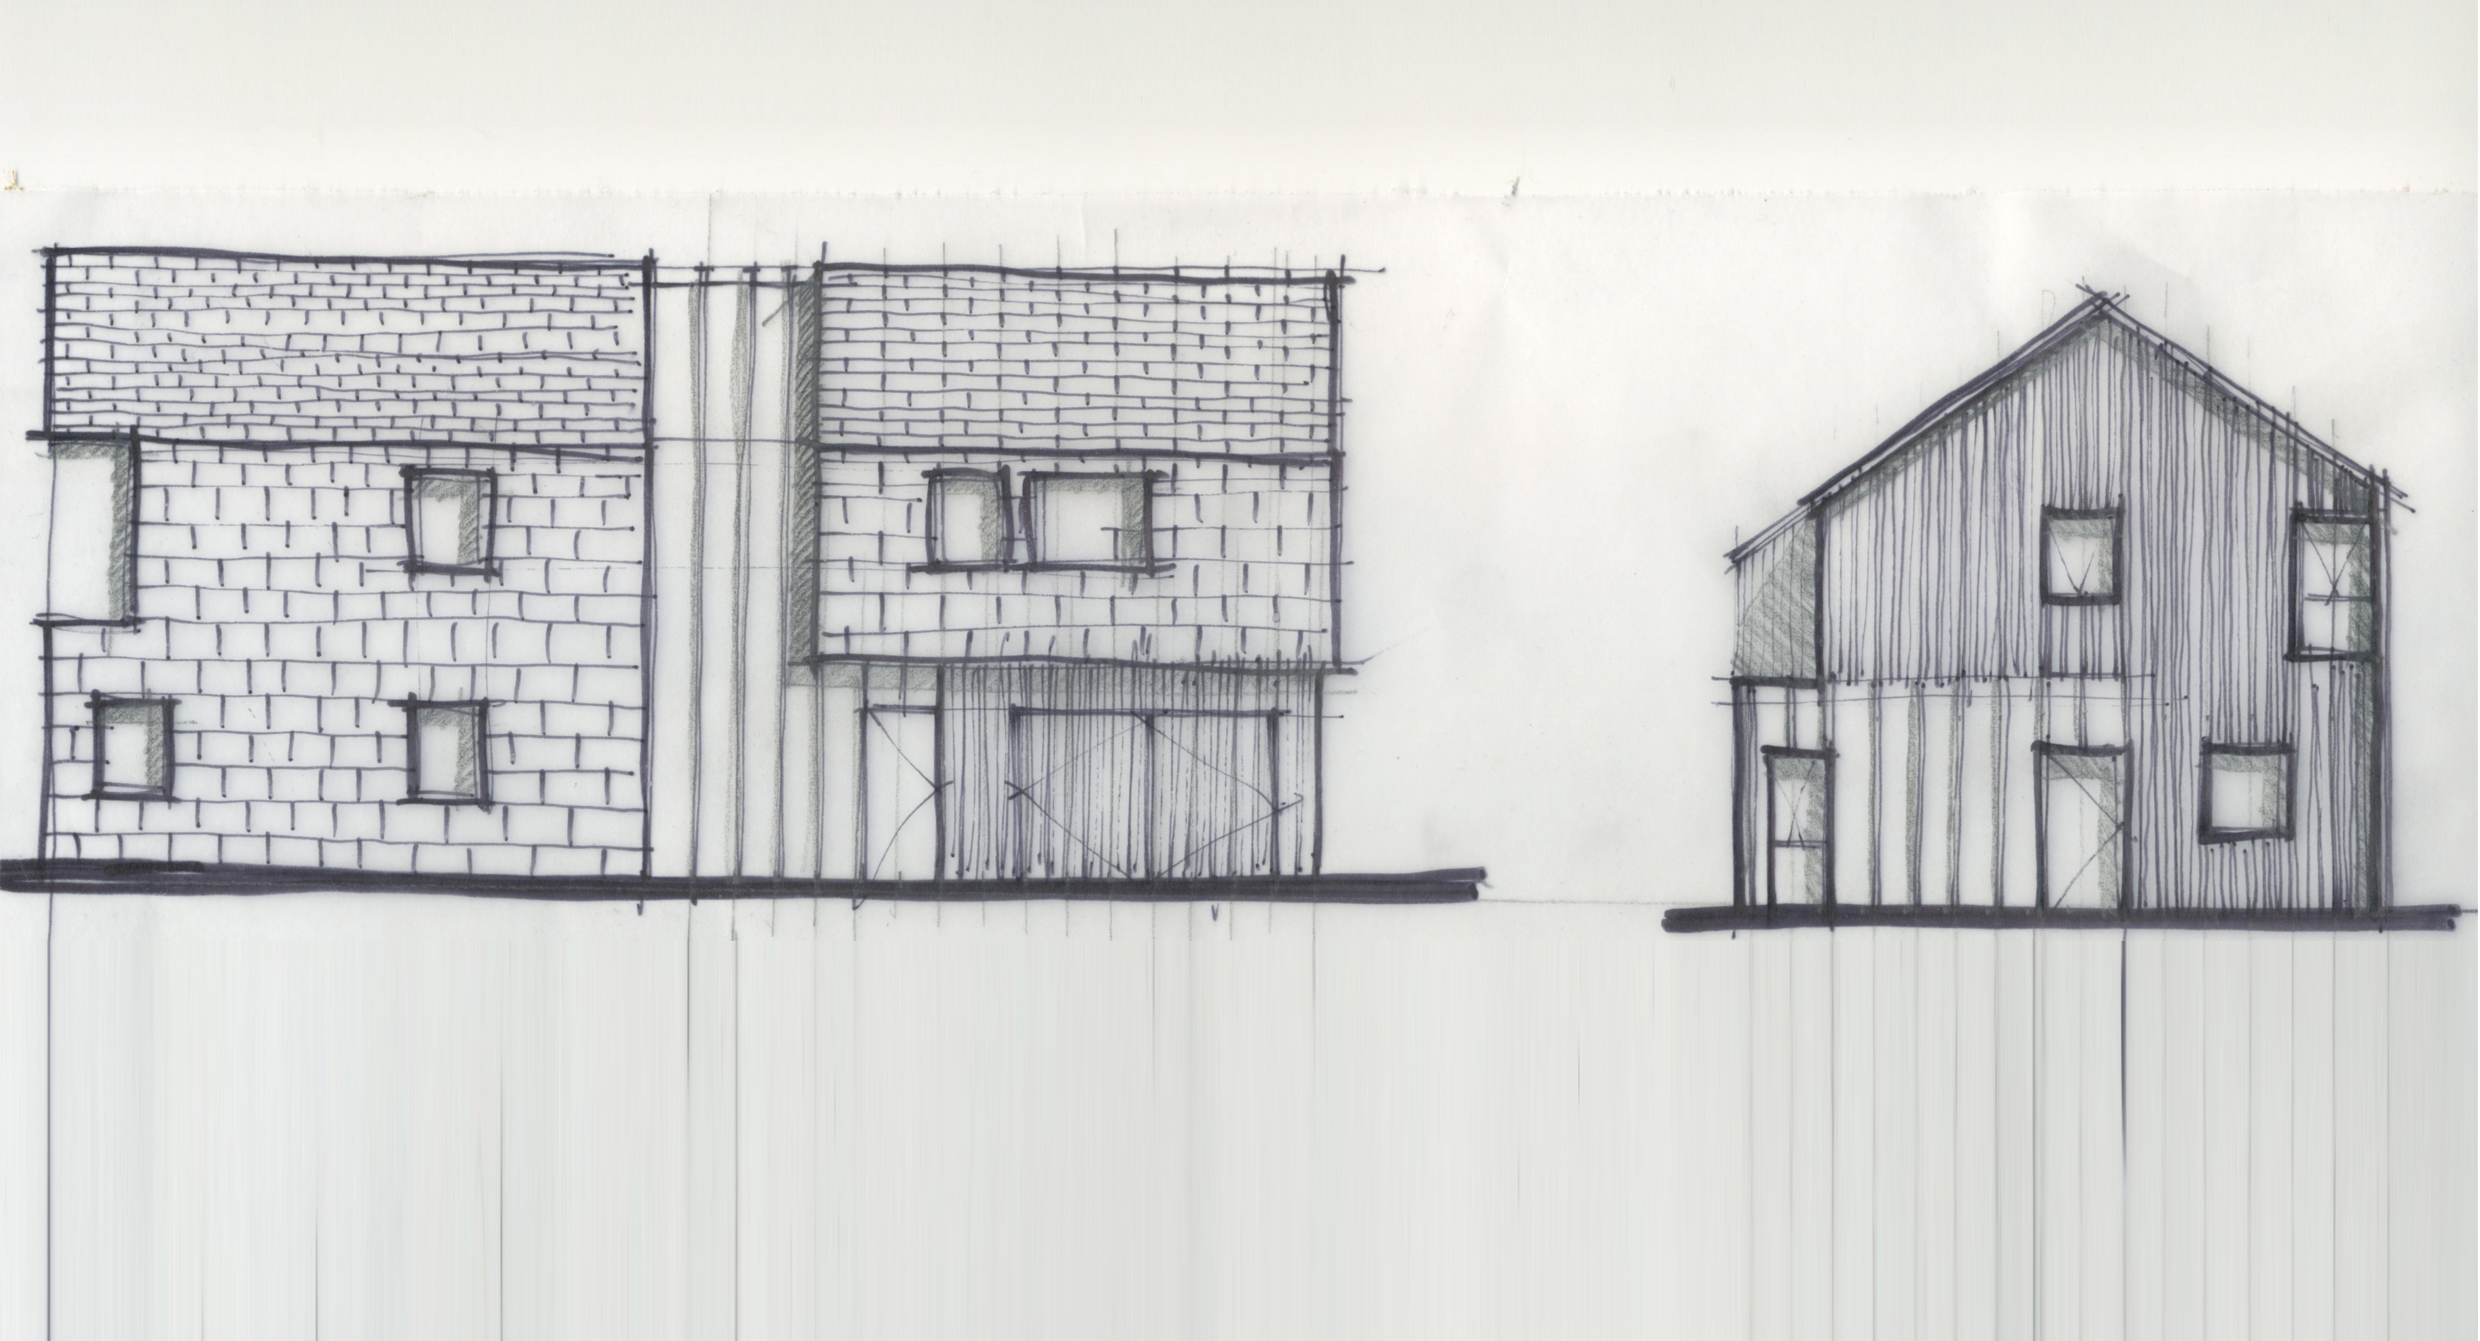 Kelsall Architects design sketch